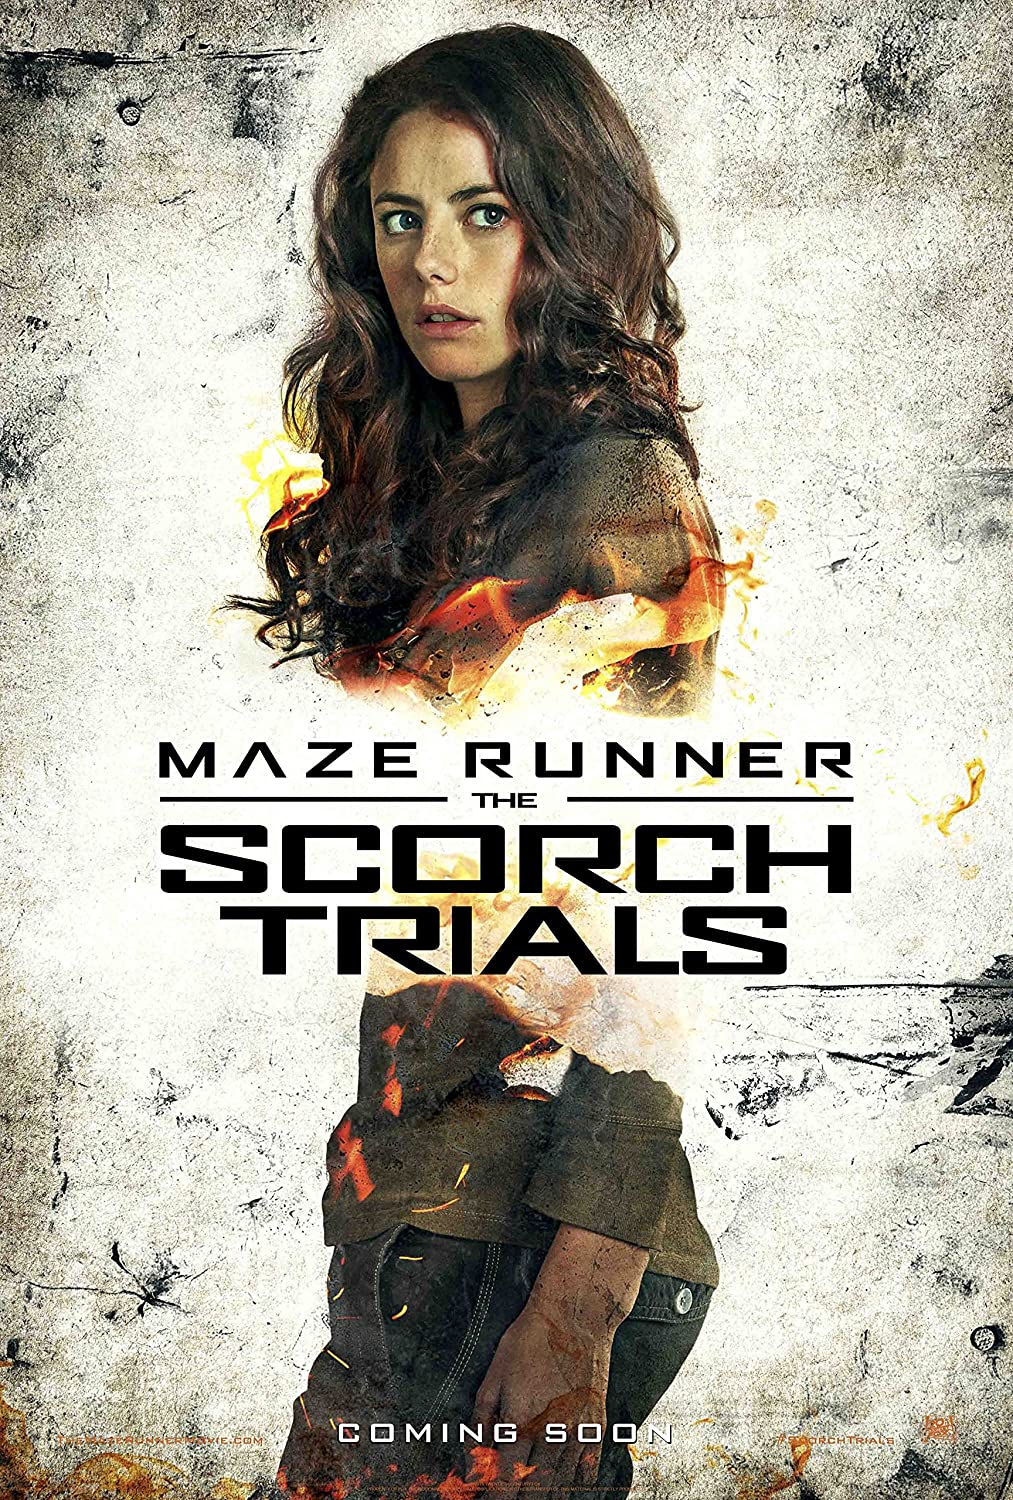 """Maze Runner : Scorch Trials - Movie Poster (12 x 18"""" Inches) , Glossy Finish (Thick): TERESA"""